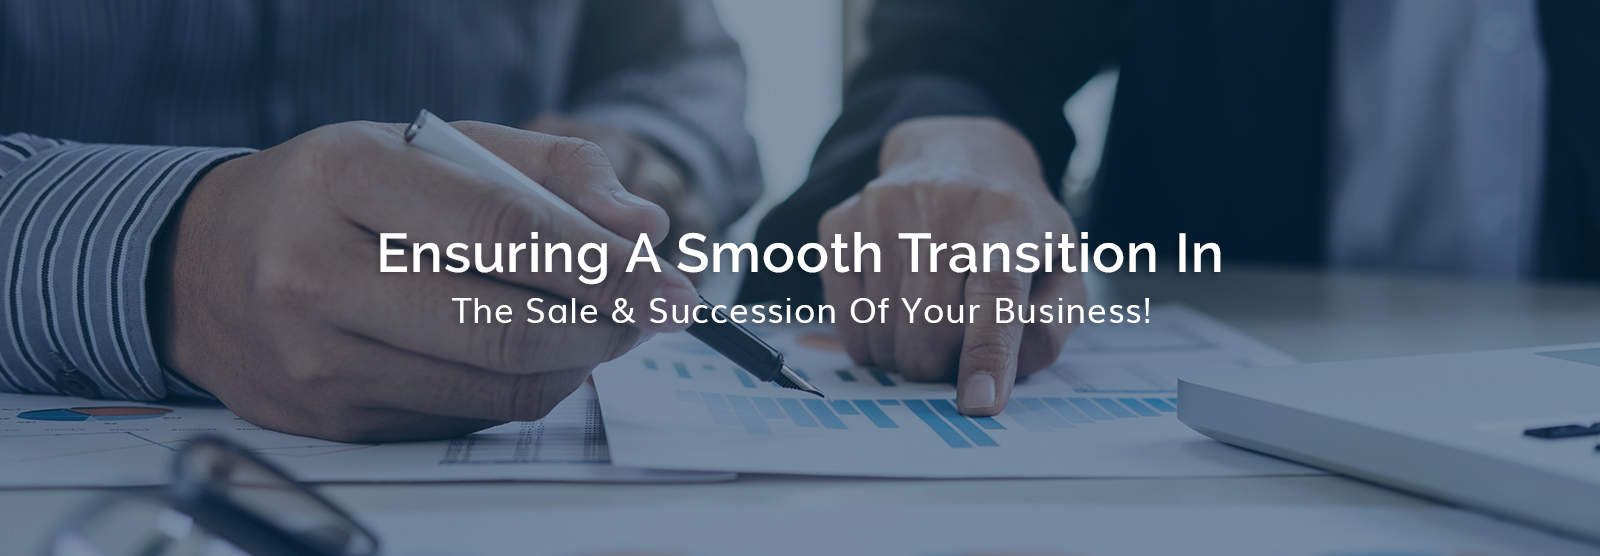 Ensuring A Smooth Transition In The Sale & Succession Of Your Business